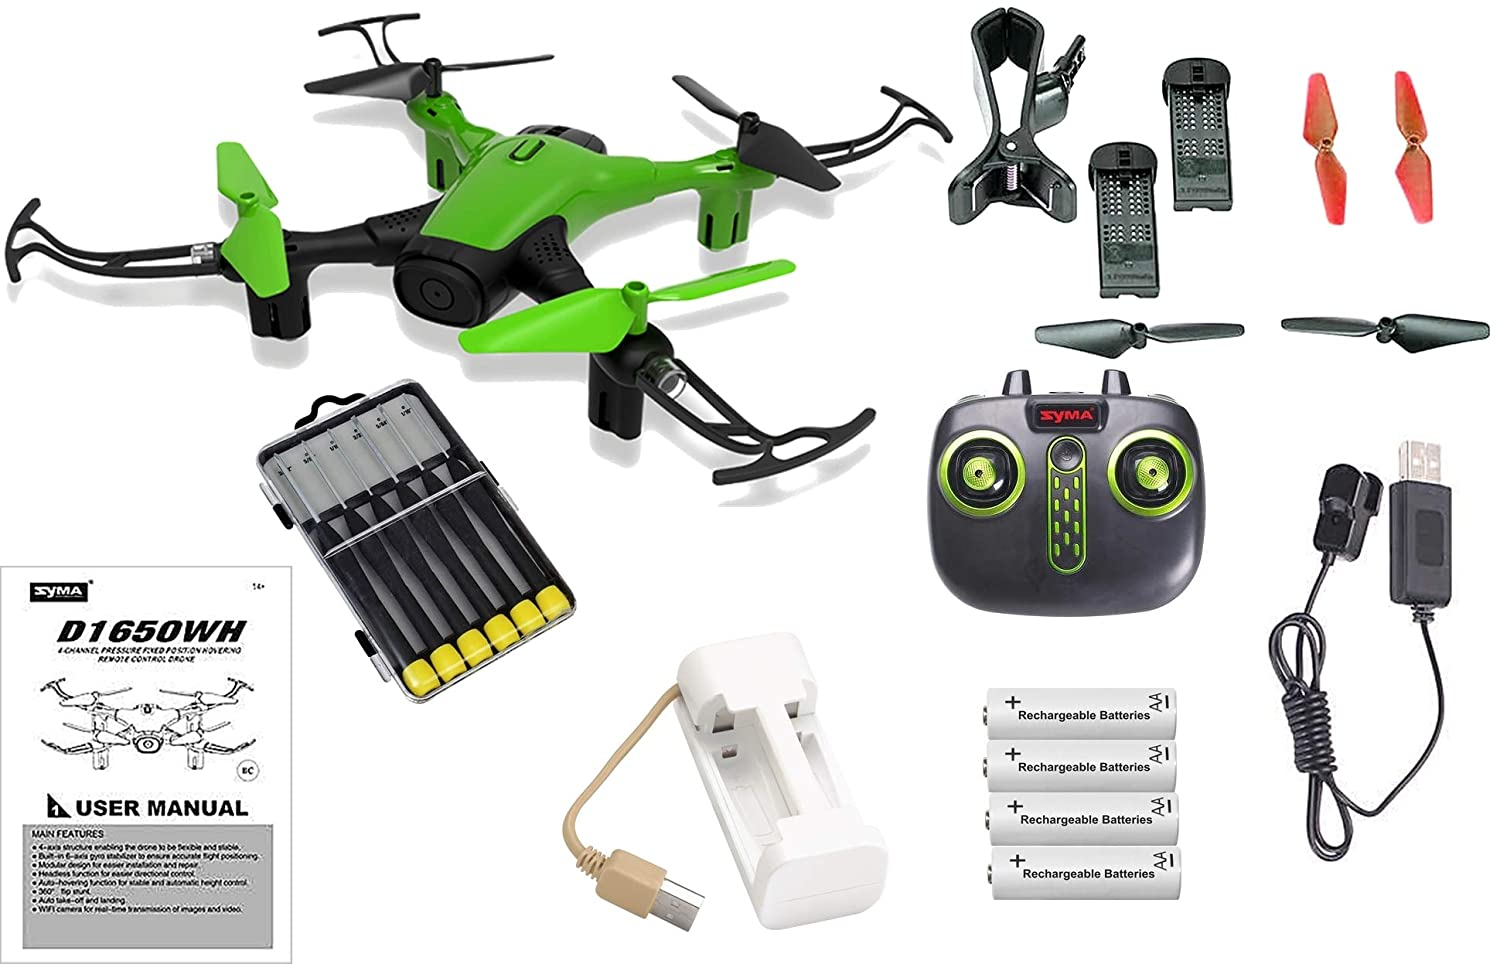 nuevo estilo Green Sky Phantom WiFi FPV Drone with with with HD Camera Live Feed 2.4GHz 4CH Bundle with Must Have Accessories - 23pcs Set  diseños exclusivos